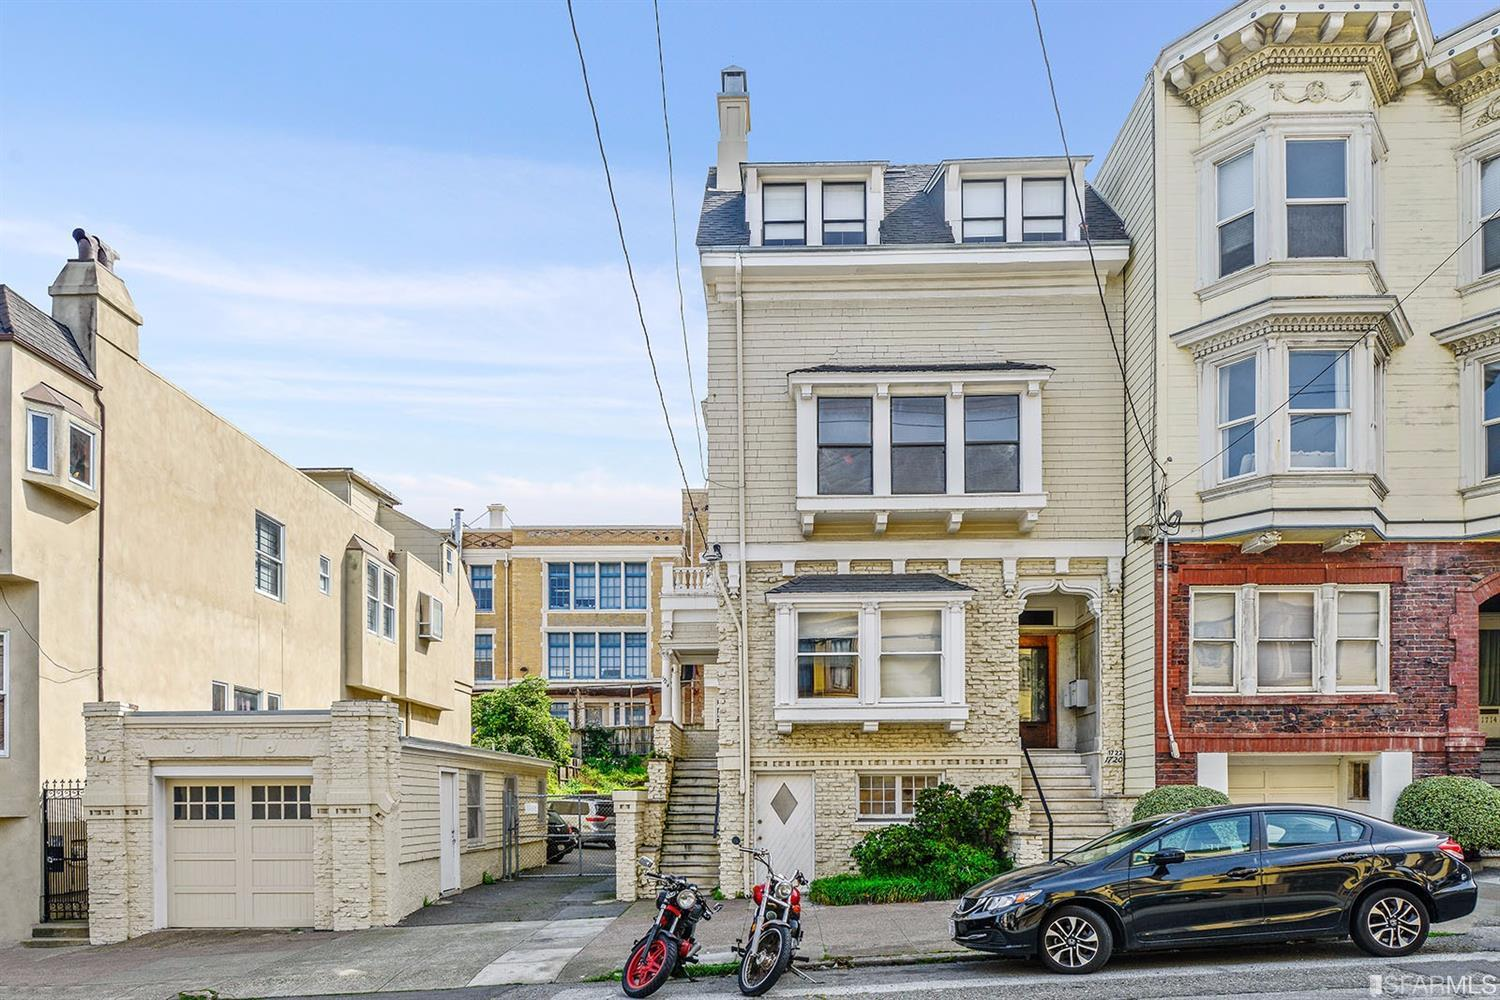 SOLD! | 1720-24 Larkin | Russian Hill Multi-Unit | $5,200,000